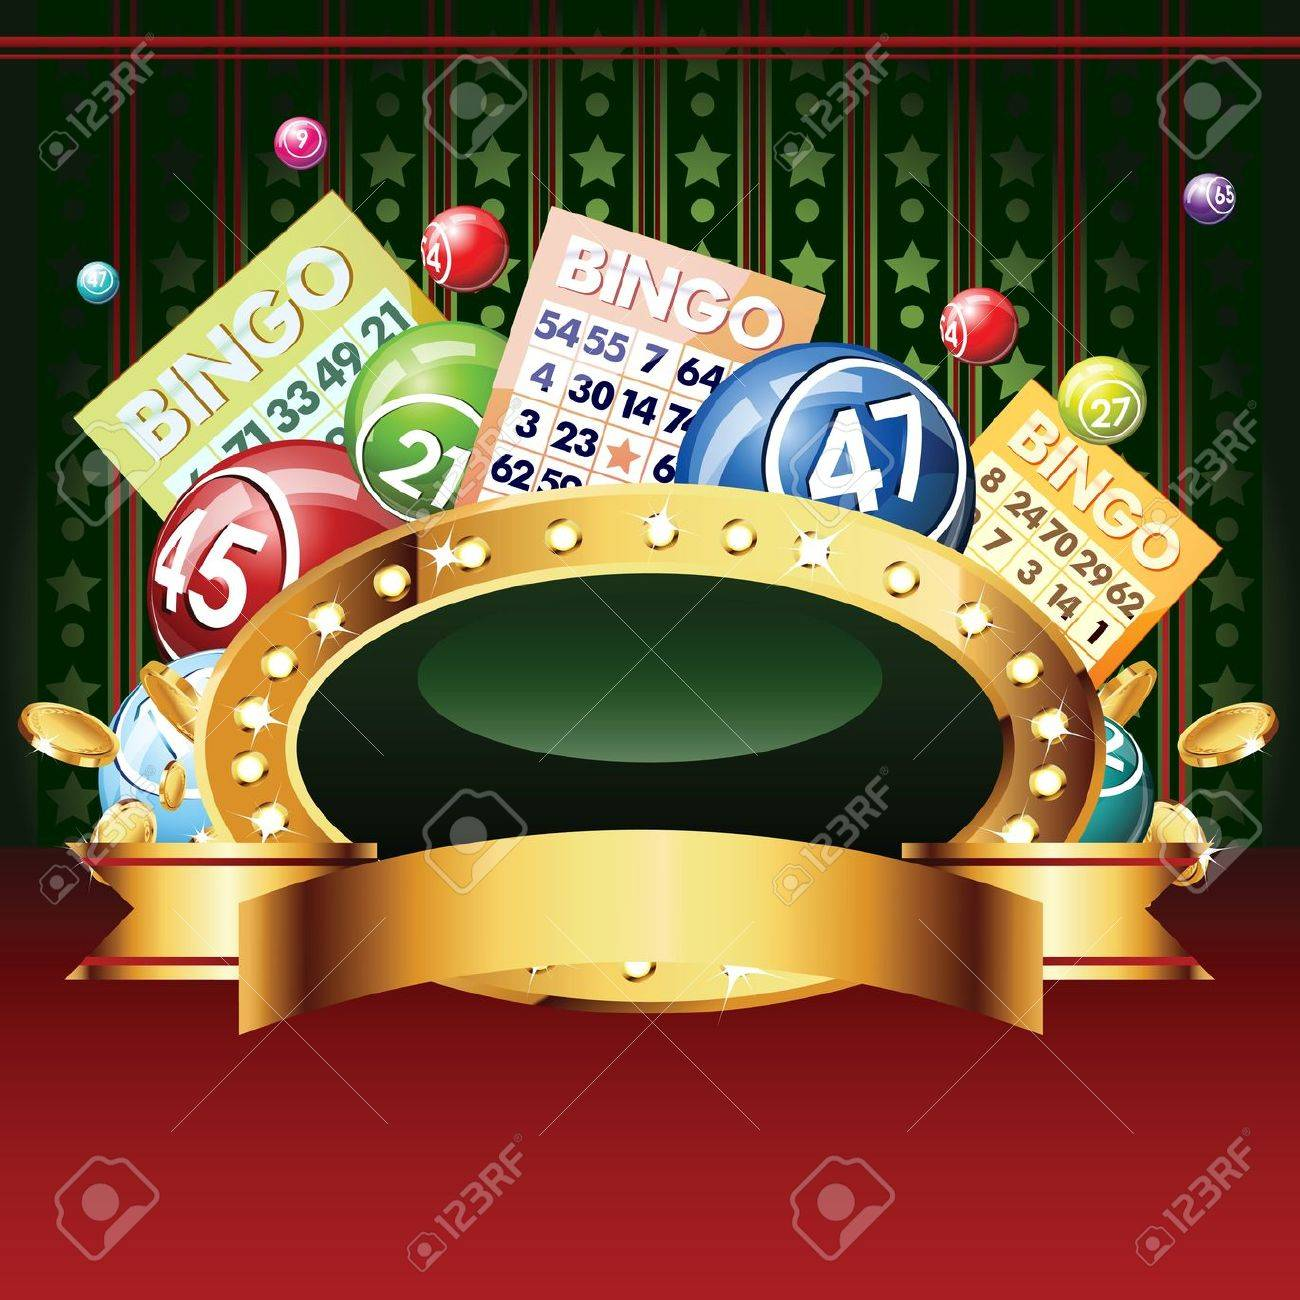 Bingo or lottery balls and cards. Stock Vector - 14830227